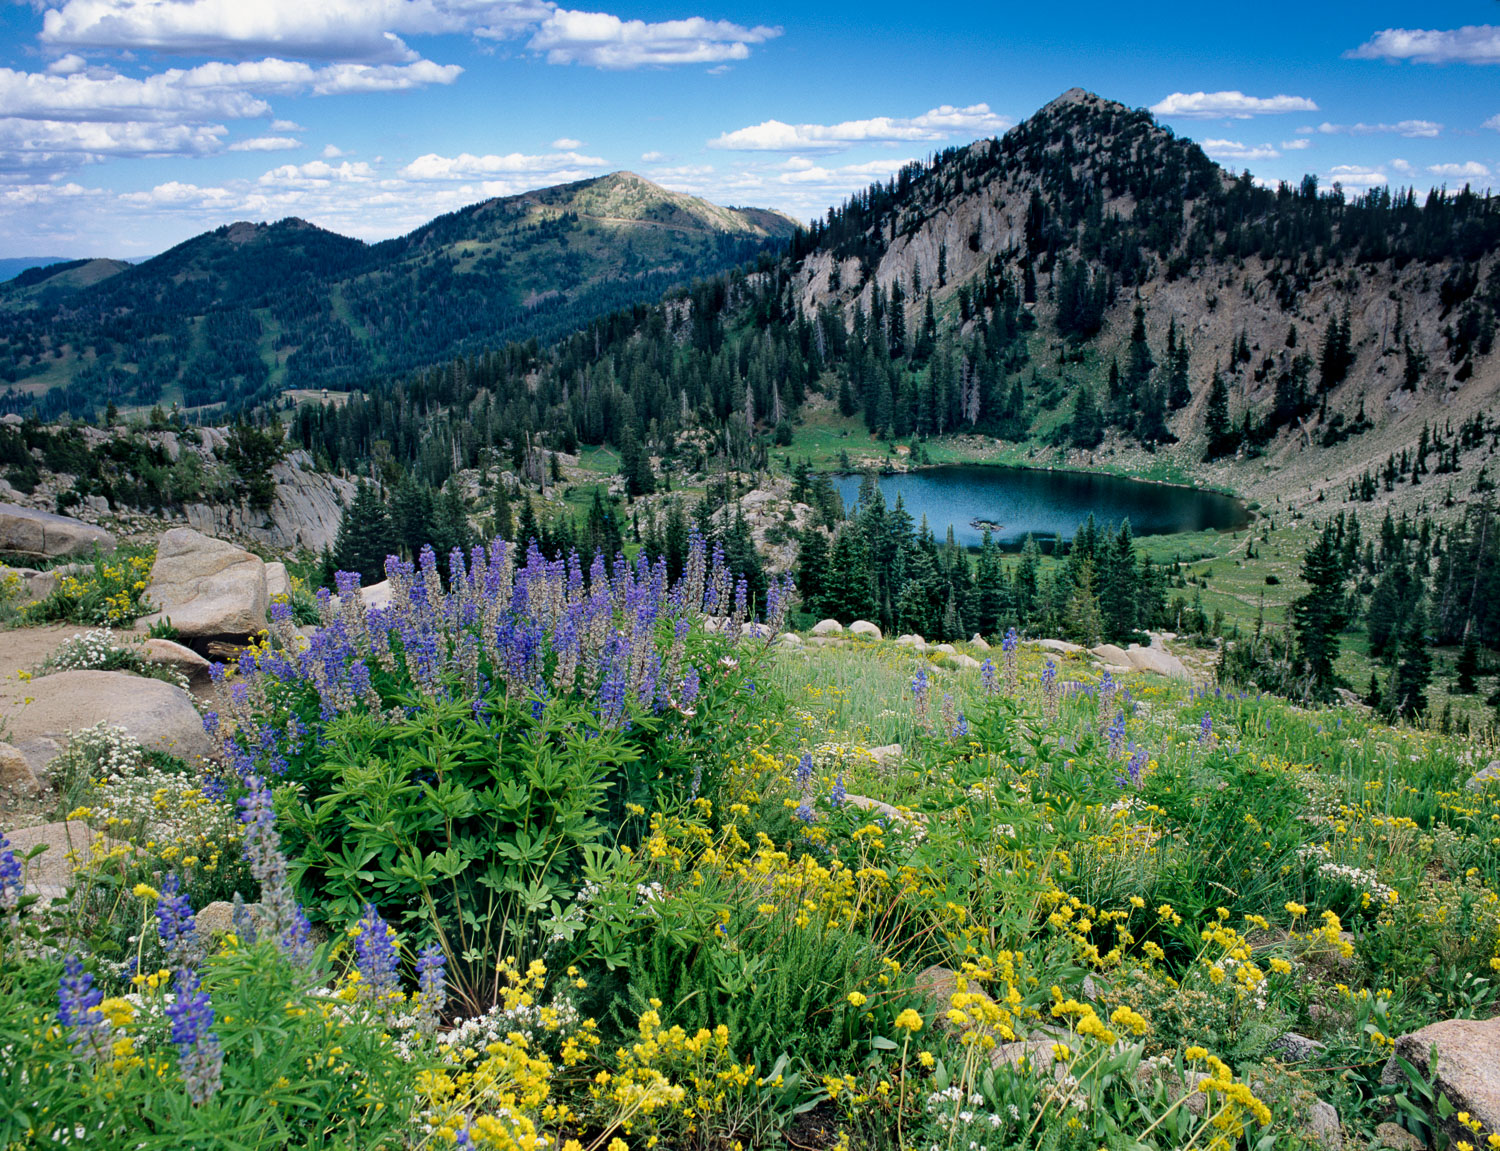 Catherine's Pass, Sunset Peak and wildflowers at their finest: W